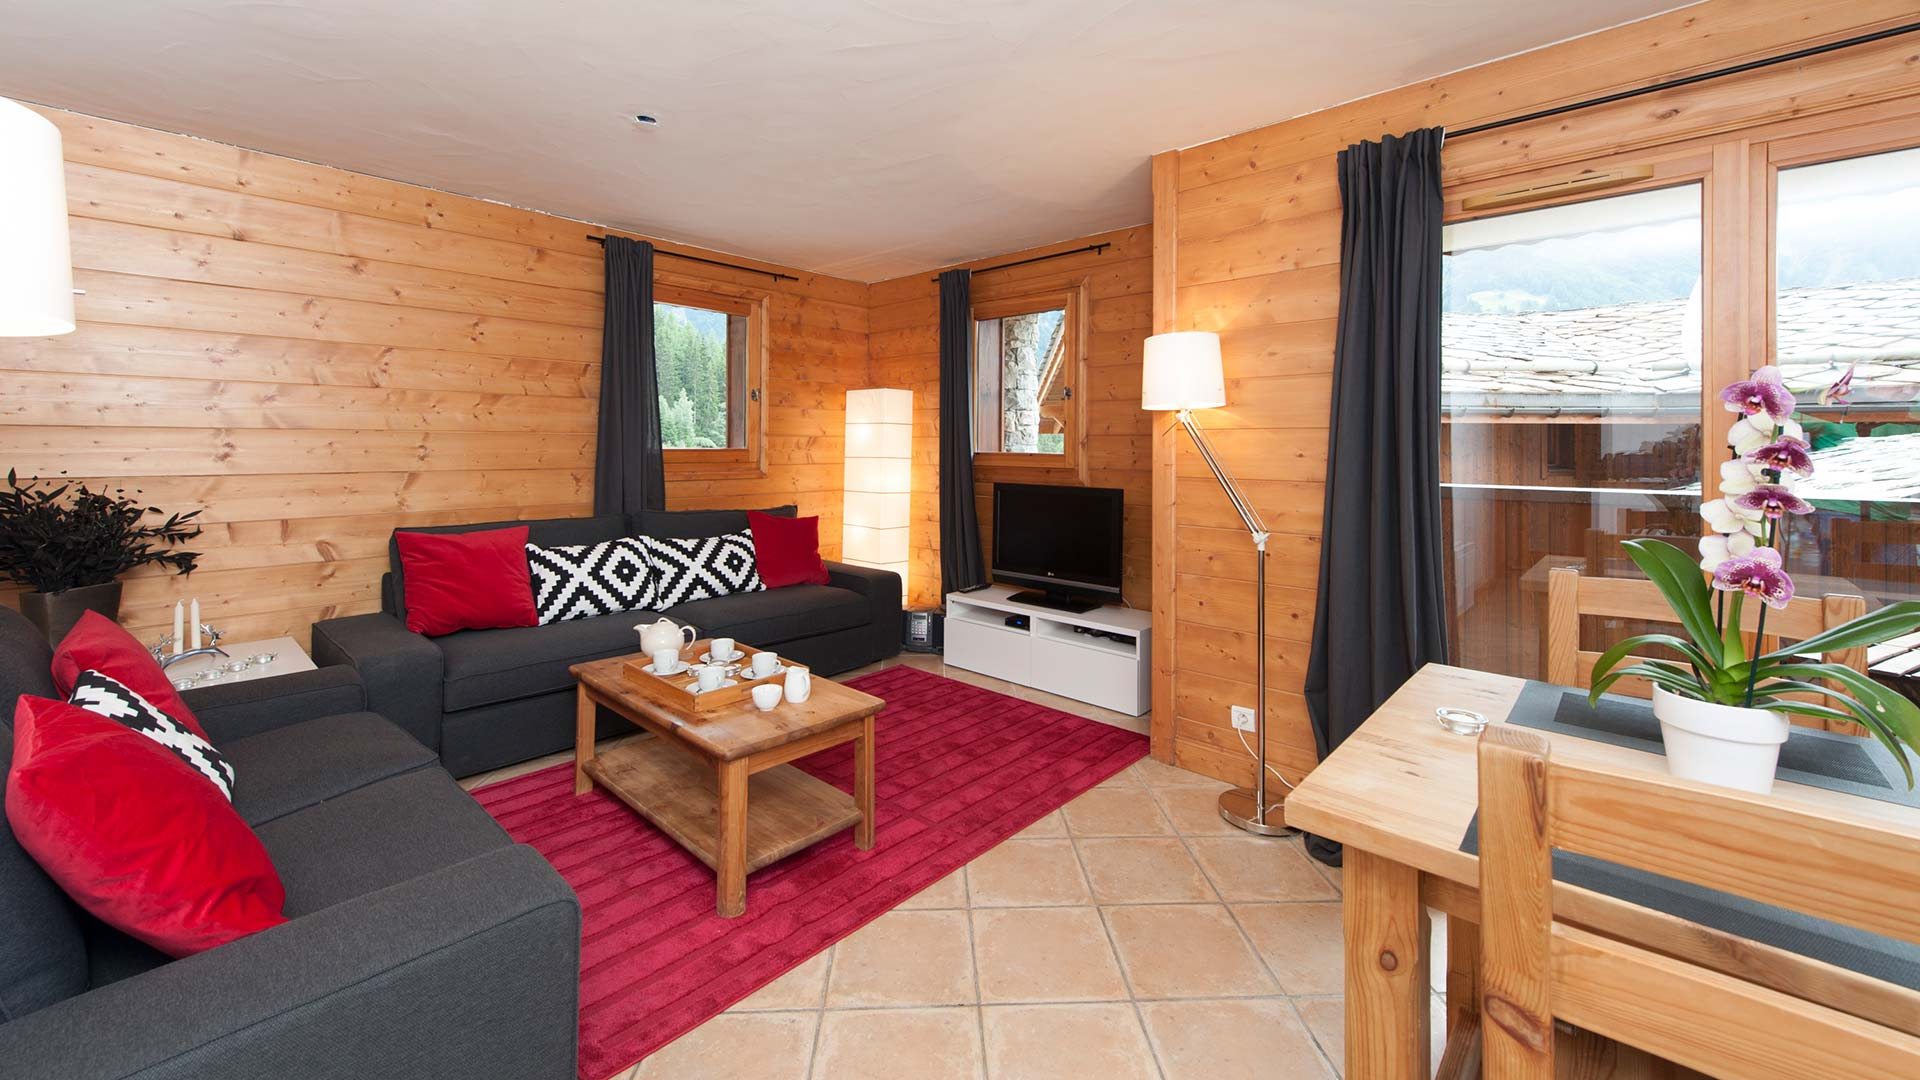 Apartment Agneau living room, sleeps 4, self catering.